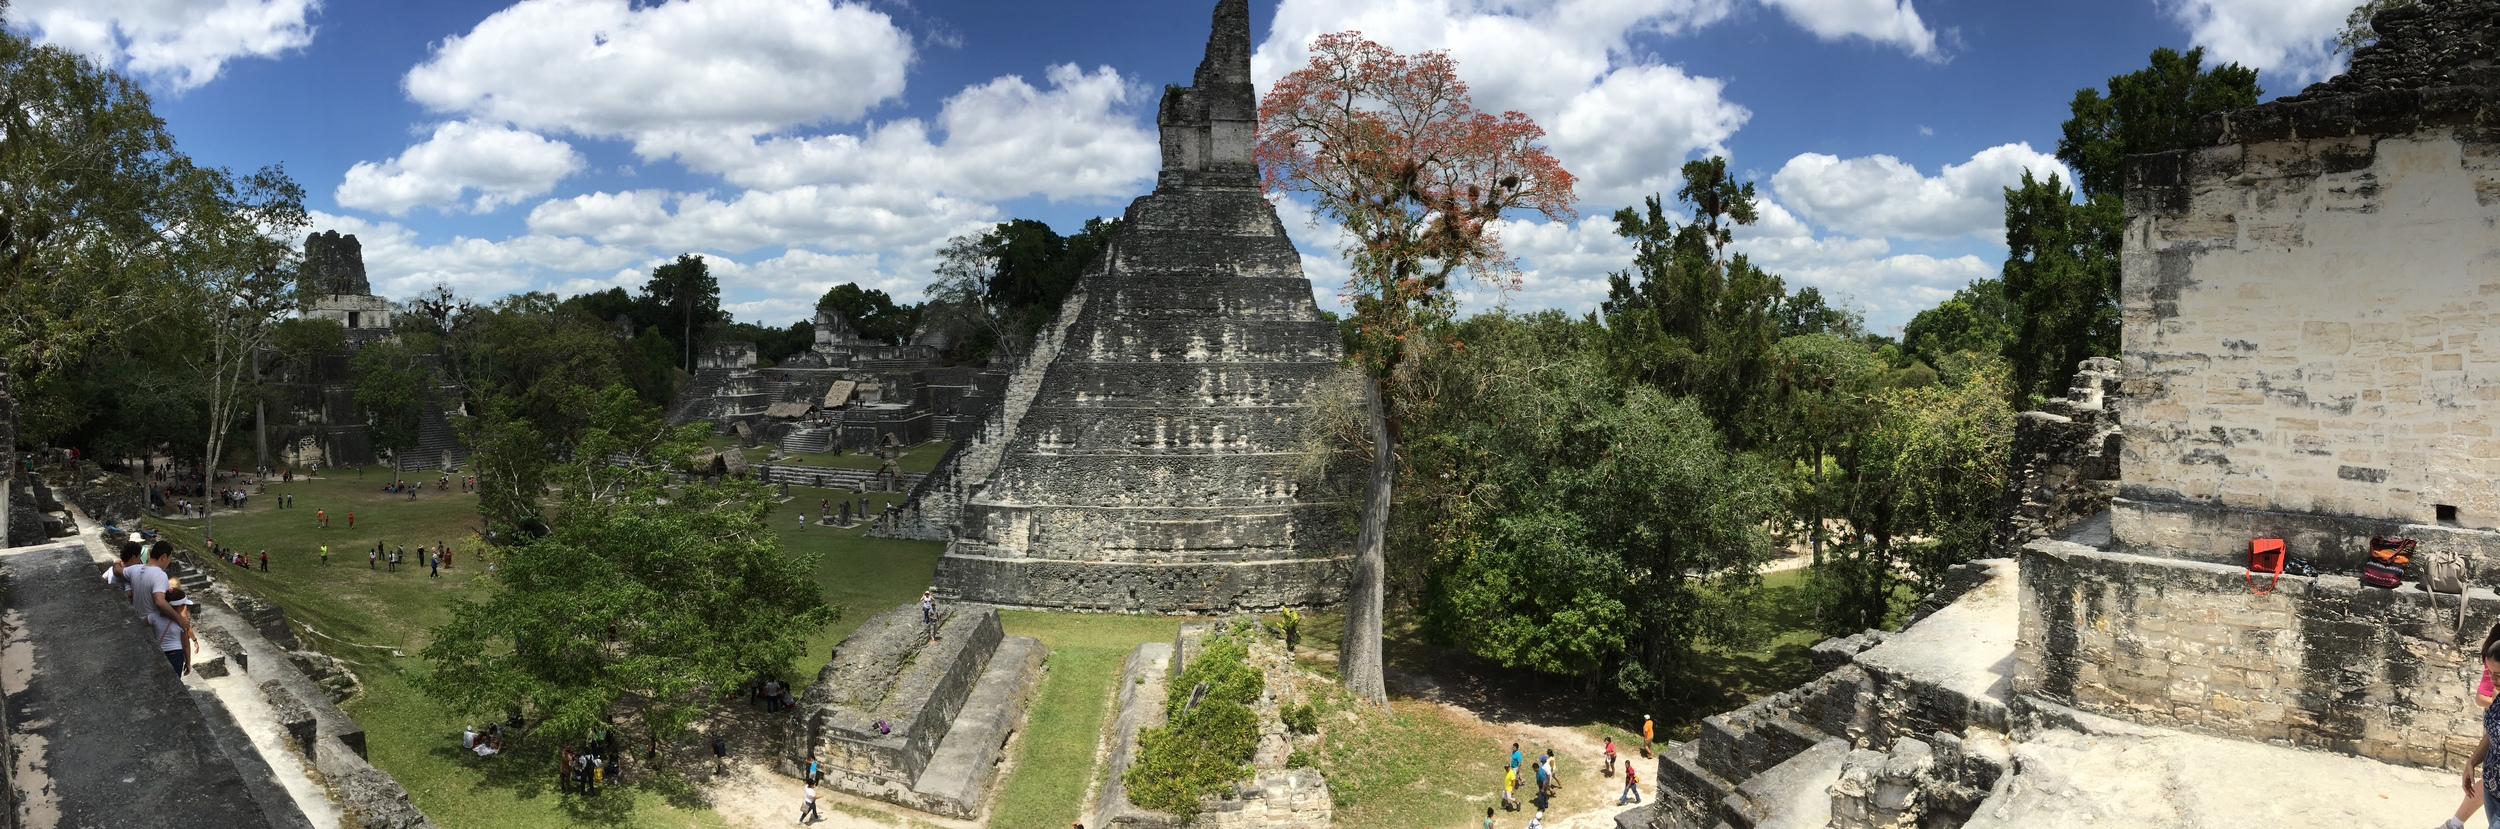 Panoramic view of the main plaza of Tikal.